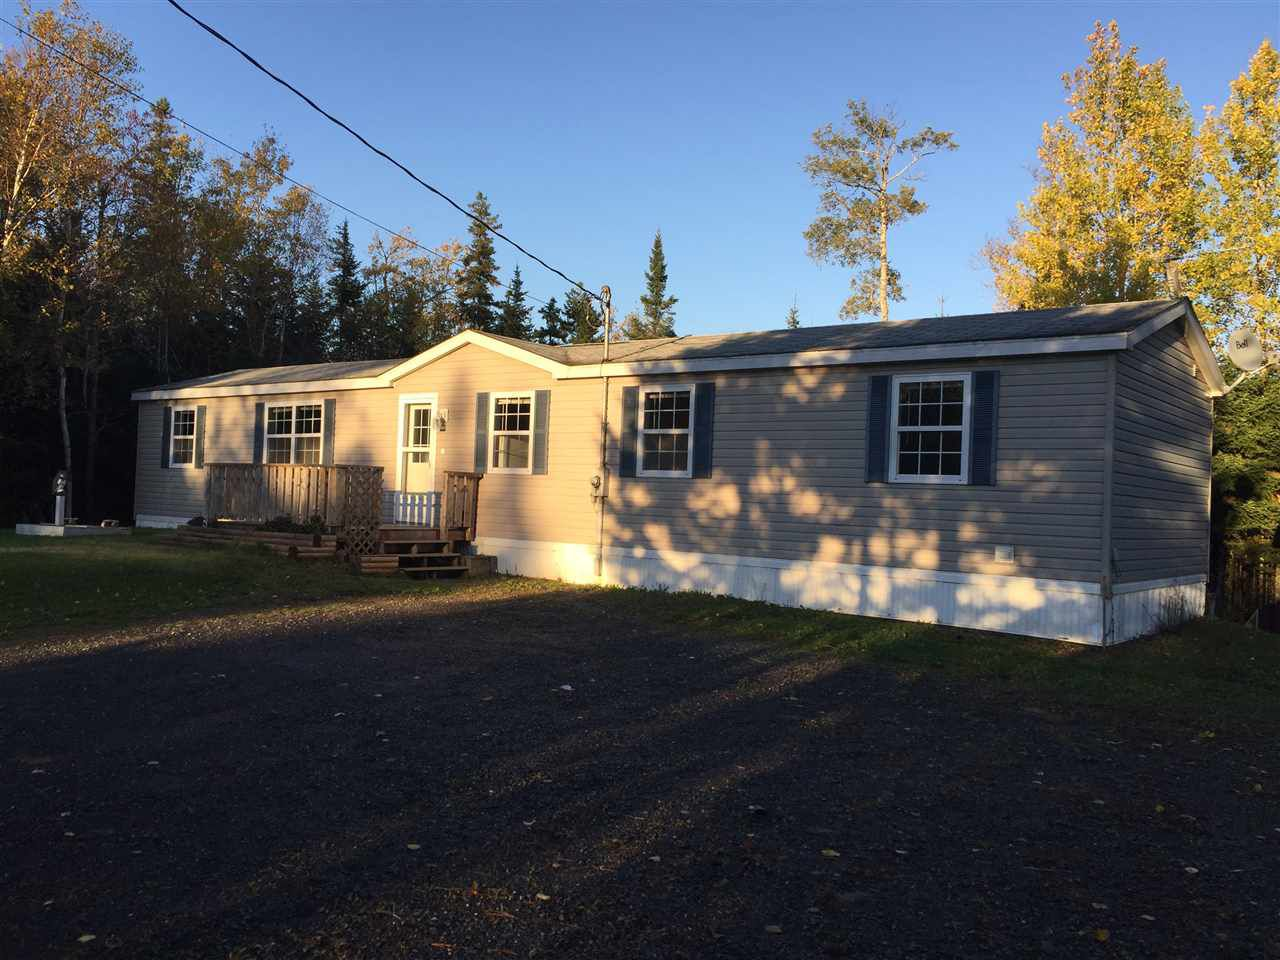 Main Photo: 2970 EAST RIVER EAST SIDE Road in Springville: 108-Rural Pictou County Residential for sale (Northern Region)  : MLS®# 201916339